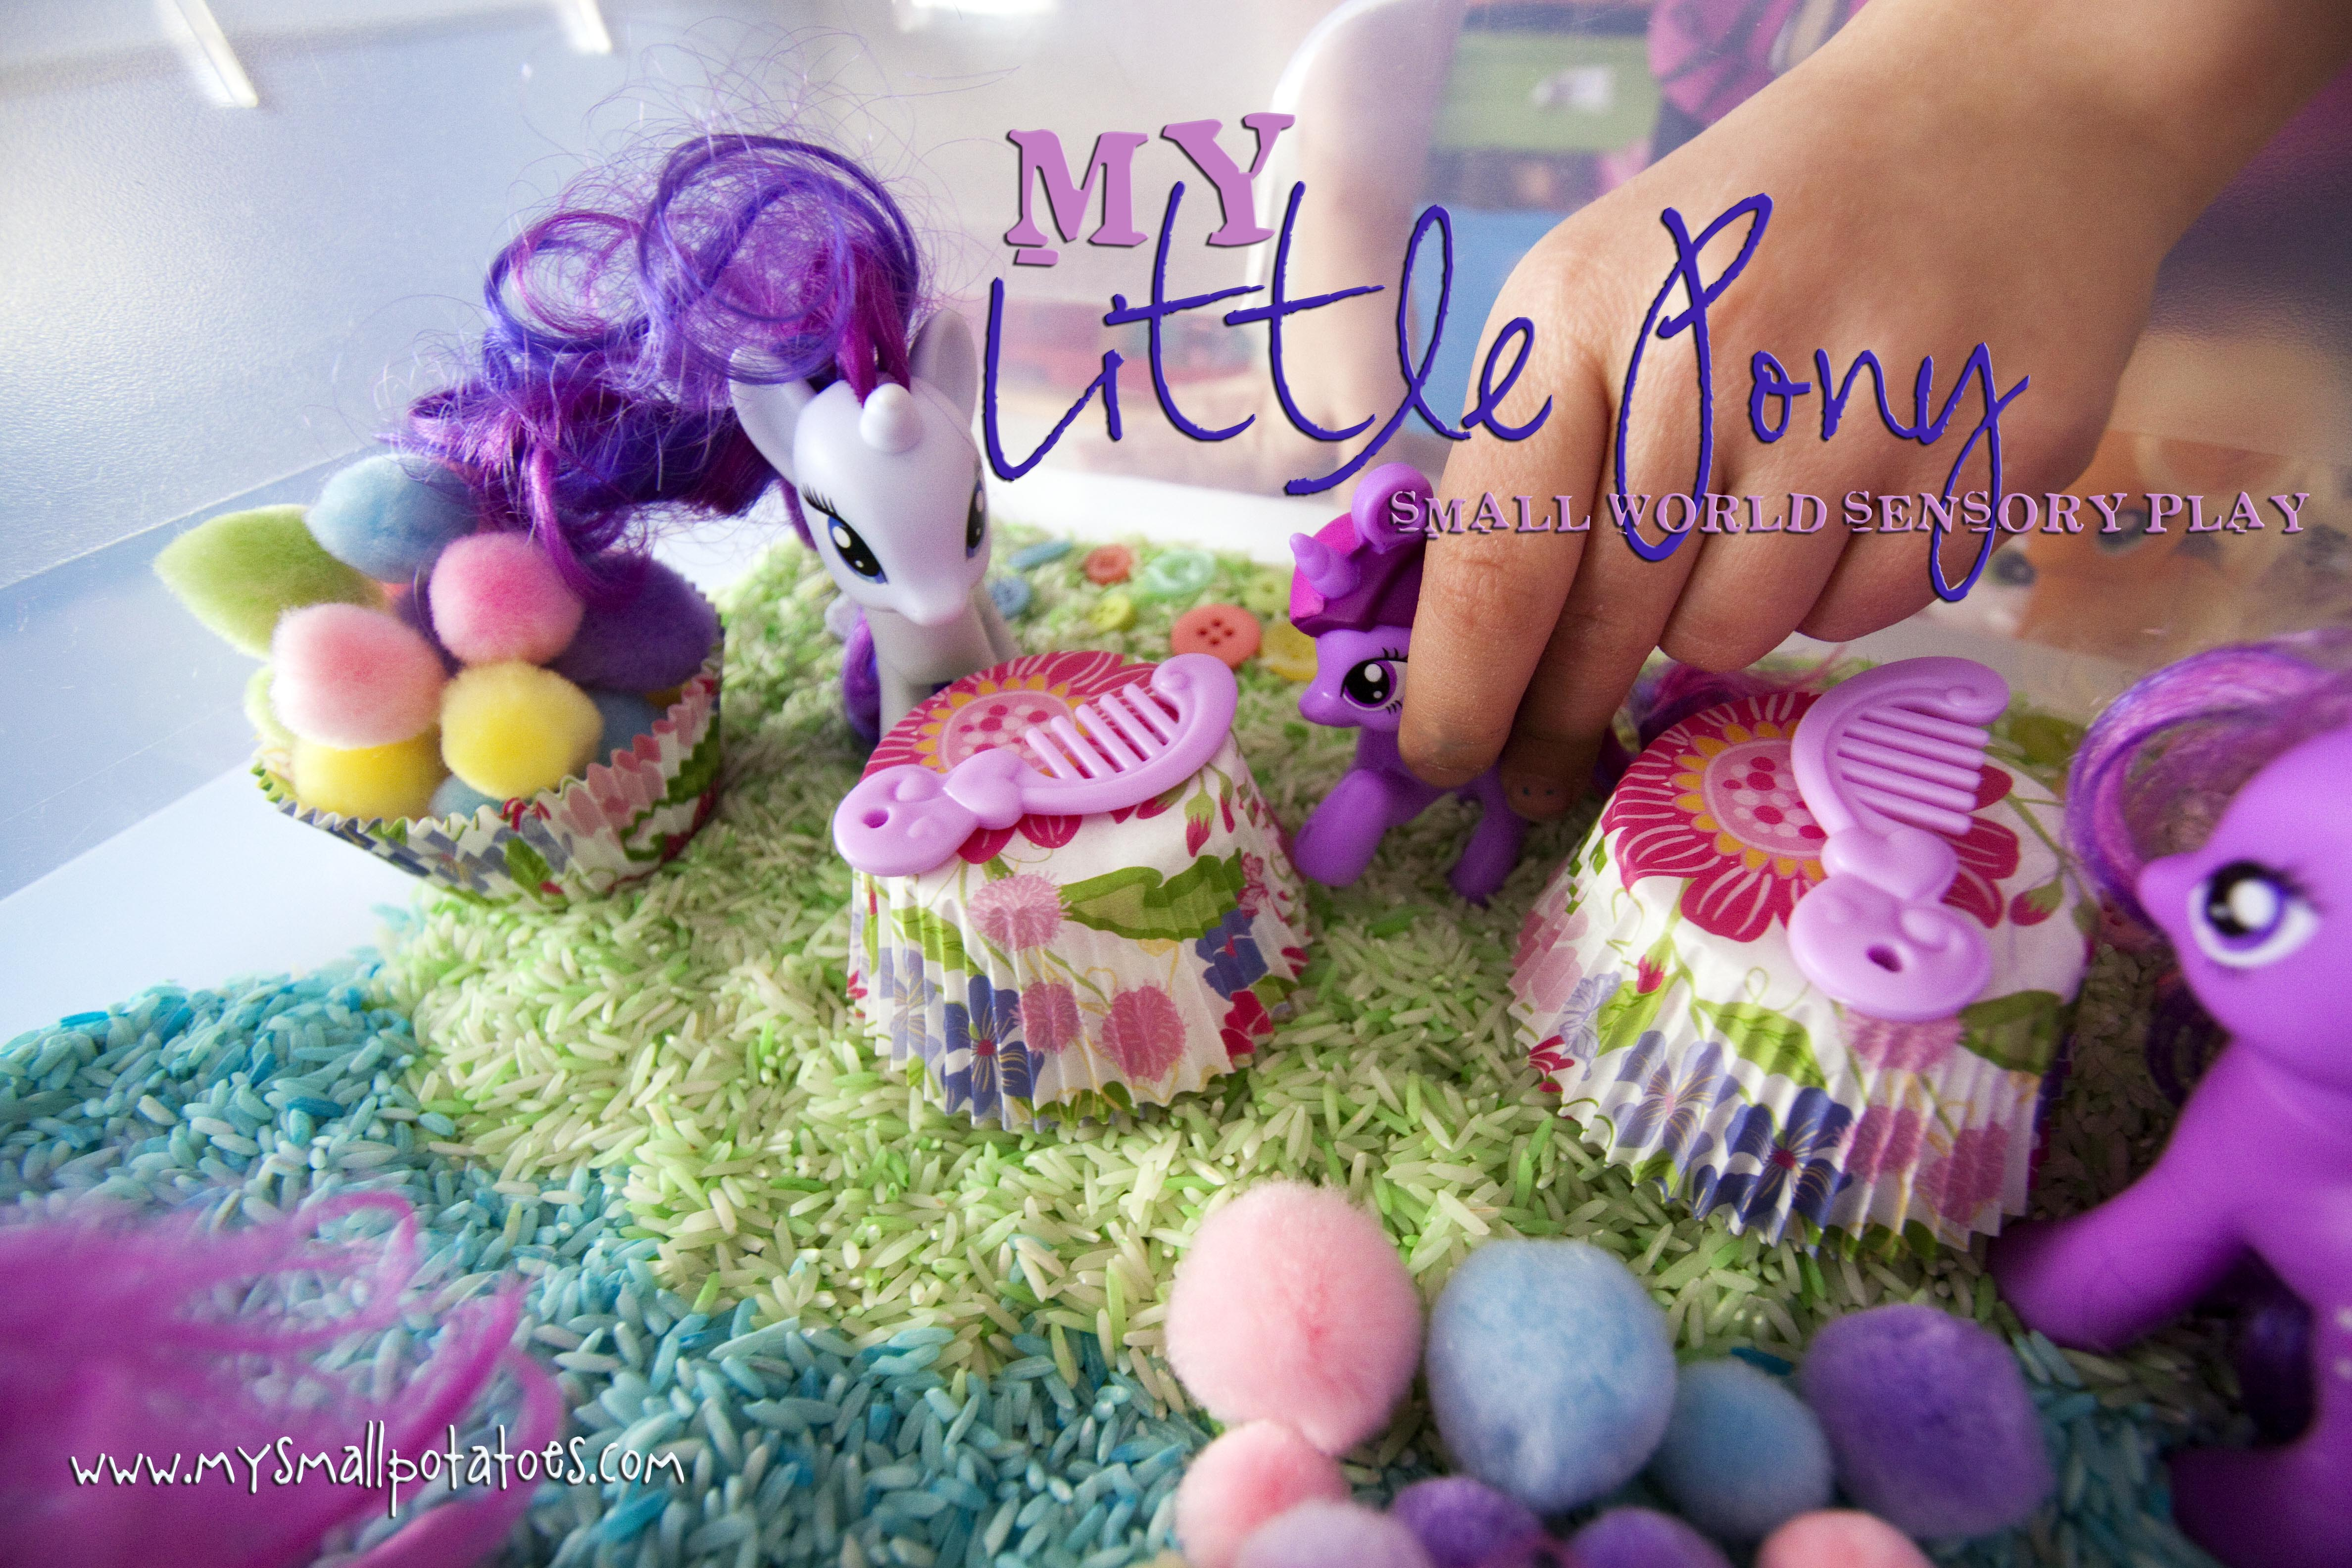 My Little Pony Small World Sensory Play